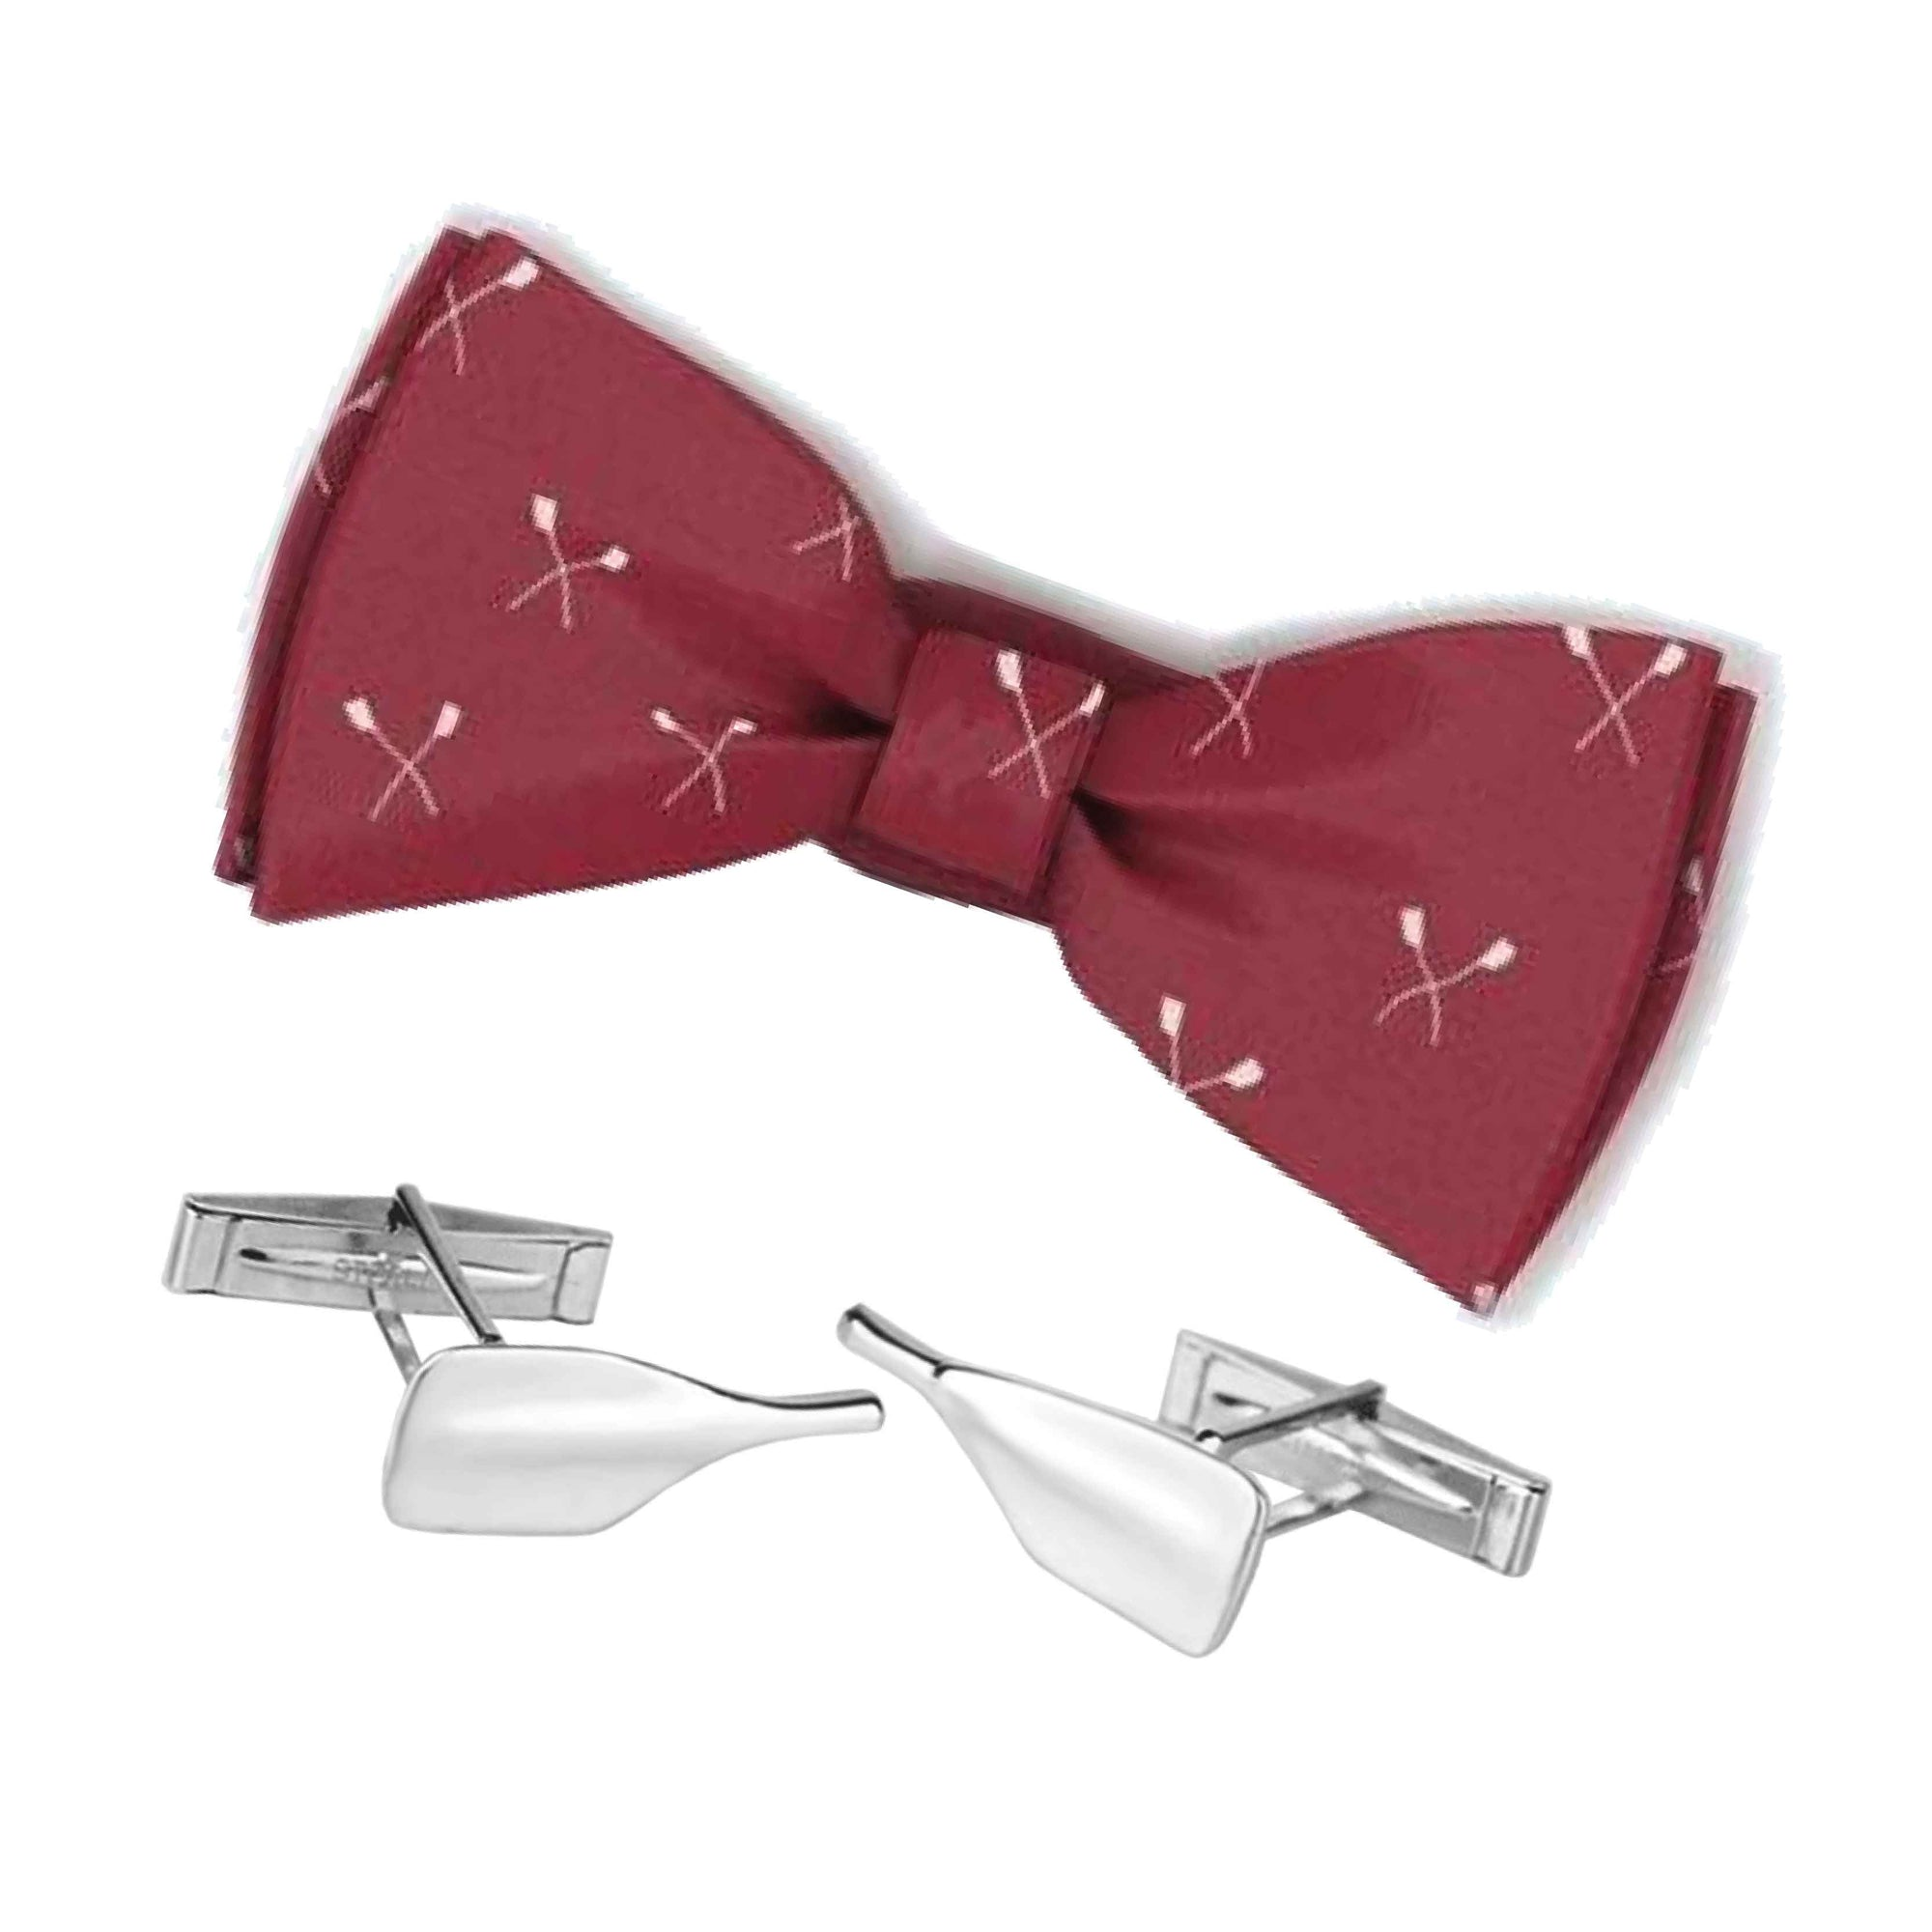 Rowing Bowtie and Cleaver Cuff Links